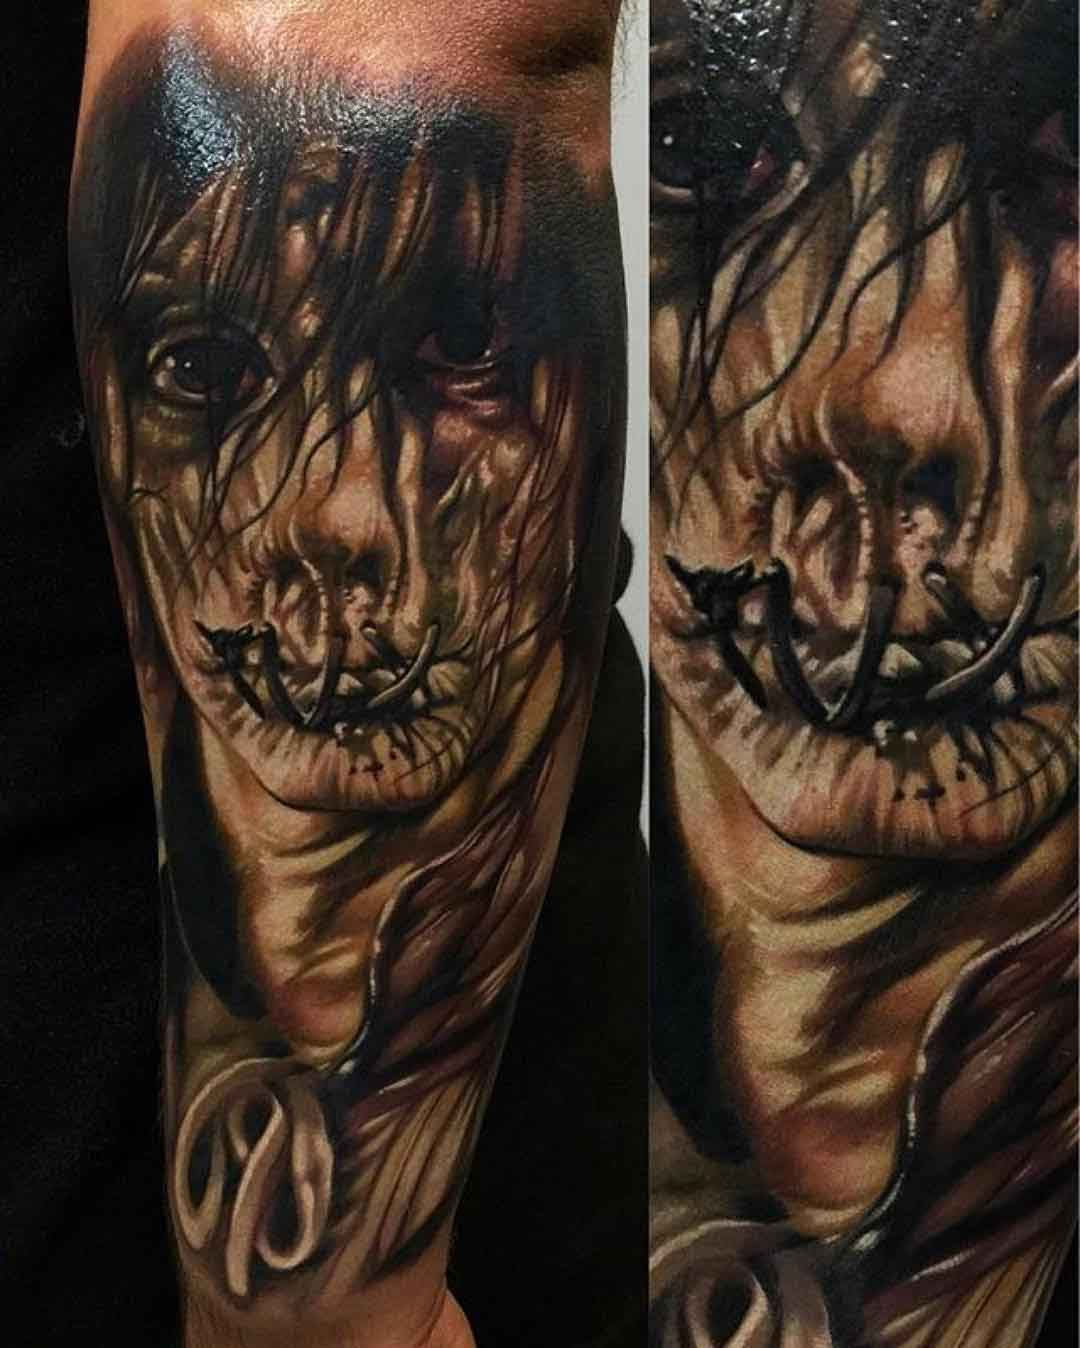 sawed mouth tattoo horror